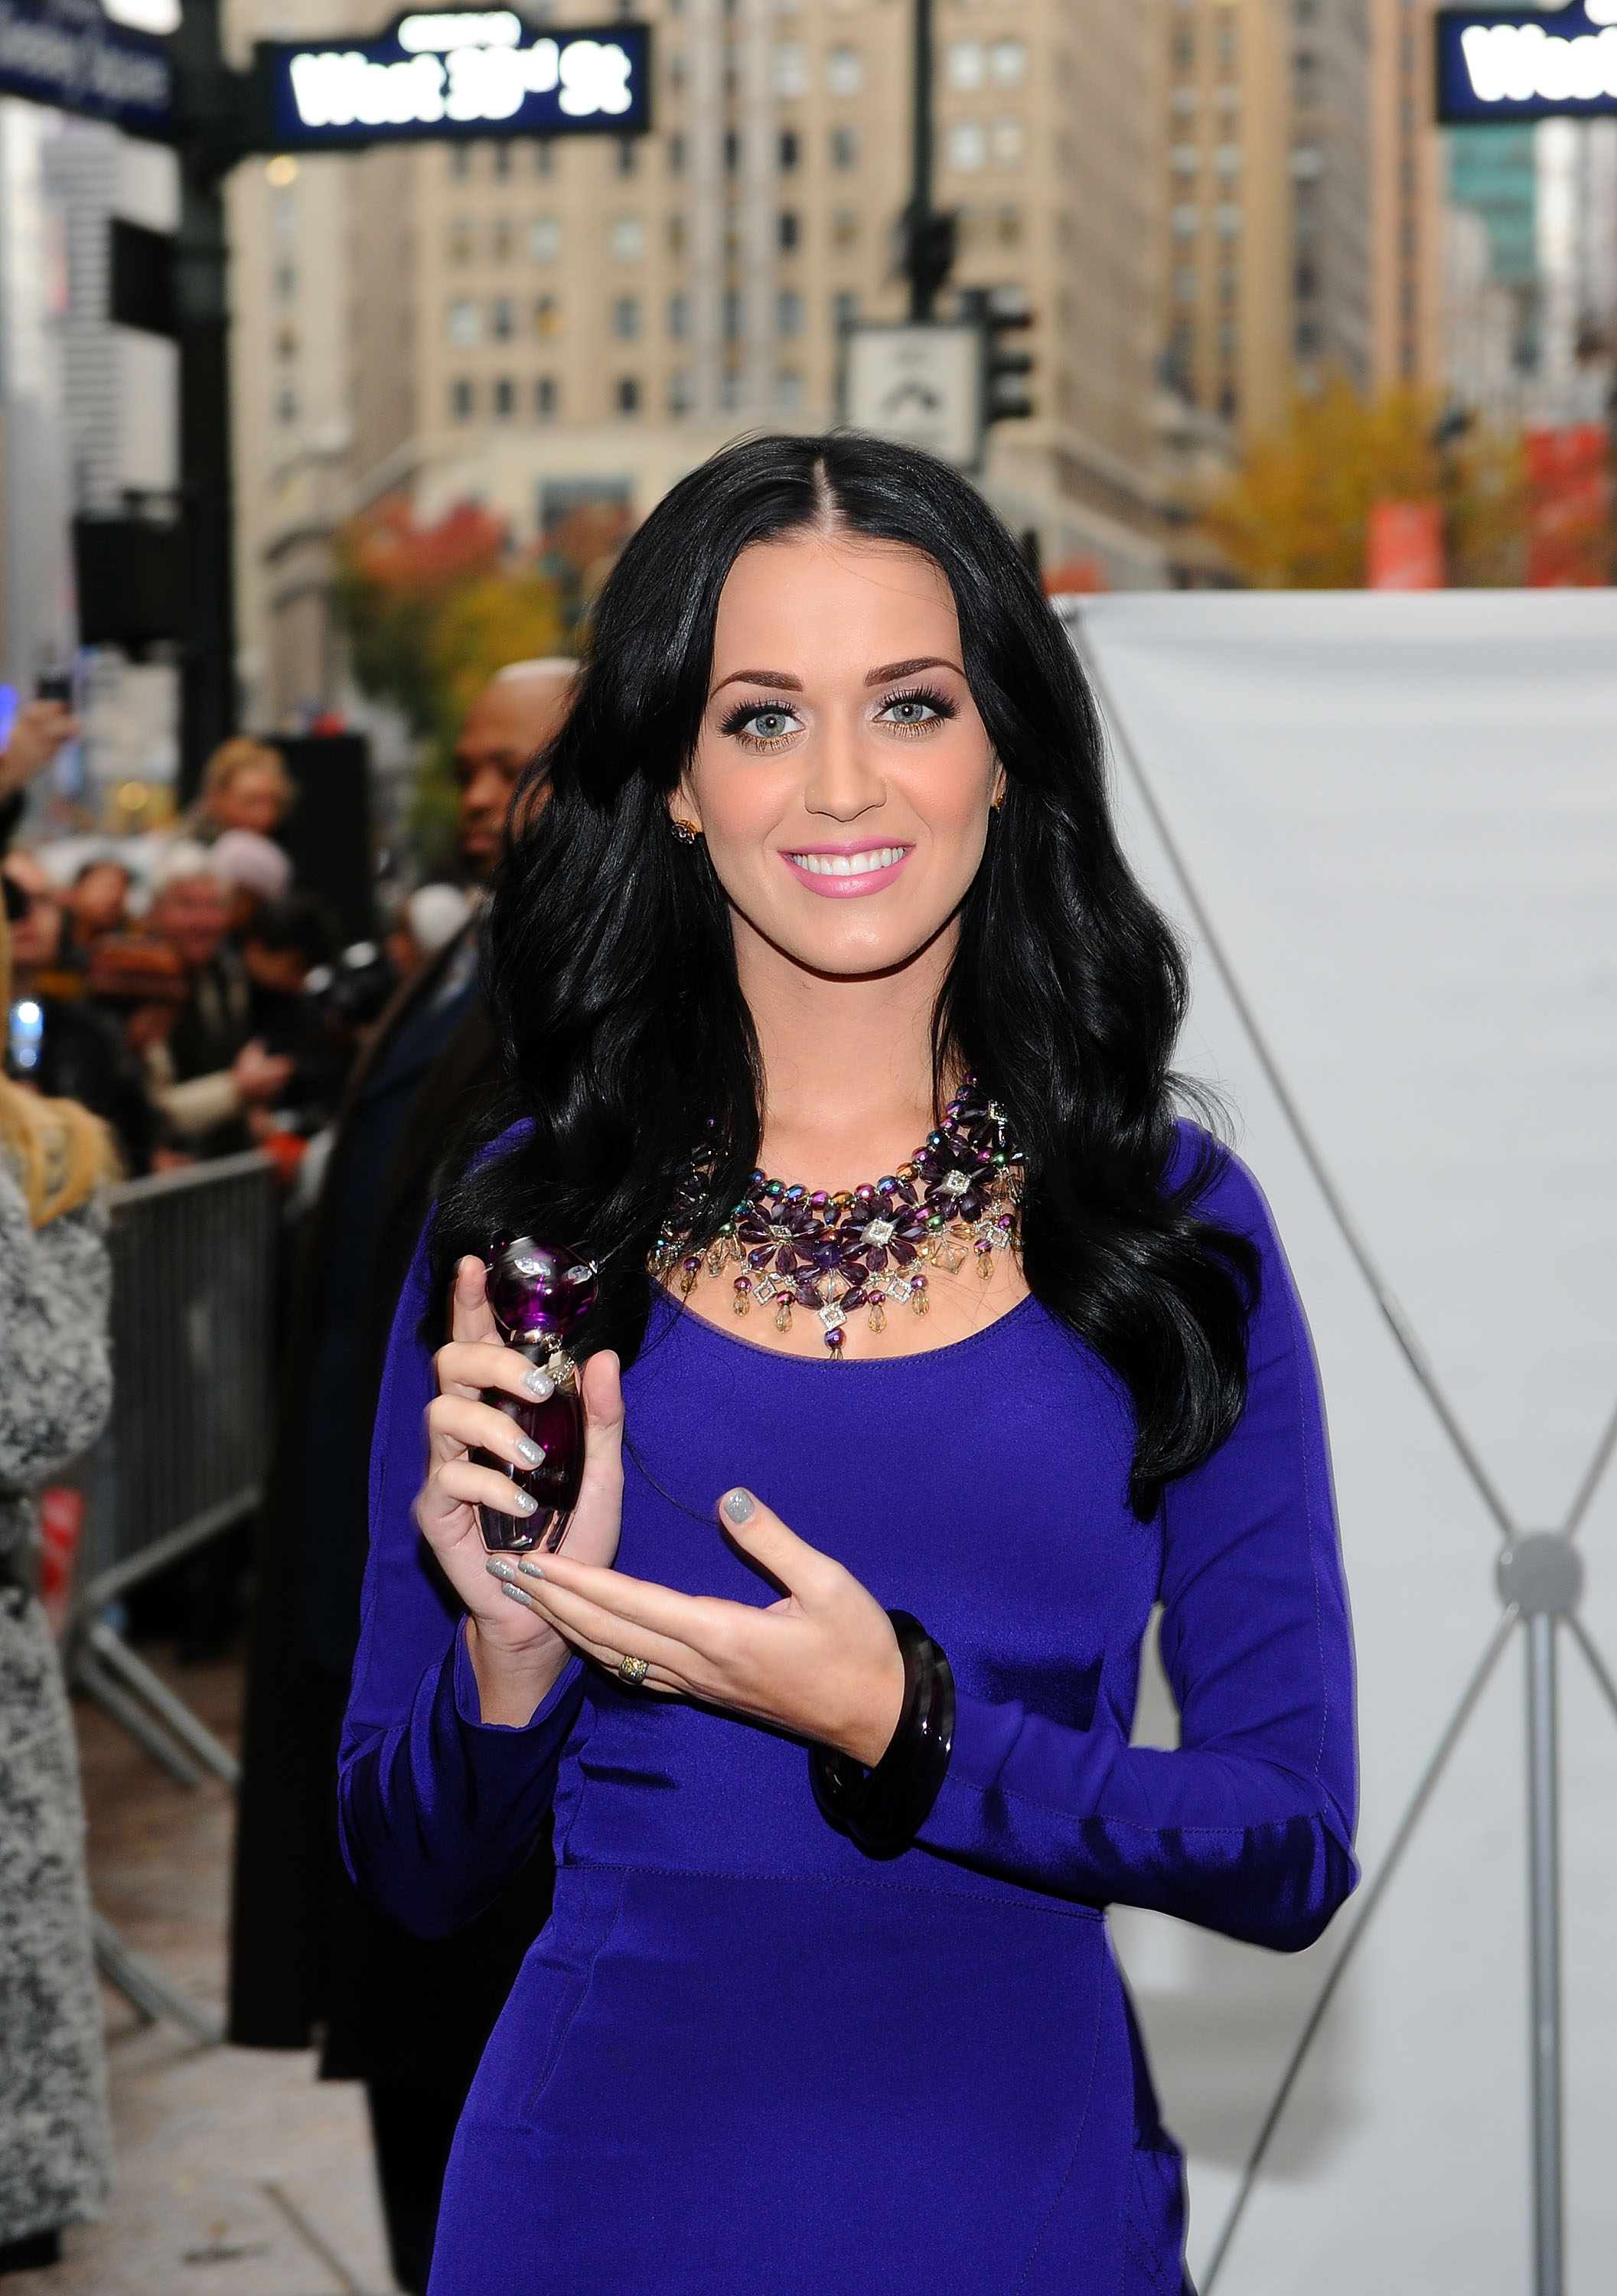 Katy Perry photo #234966